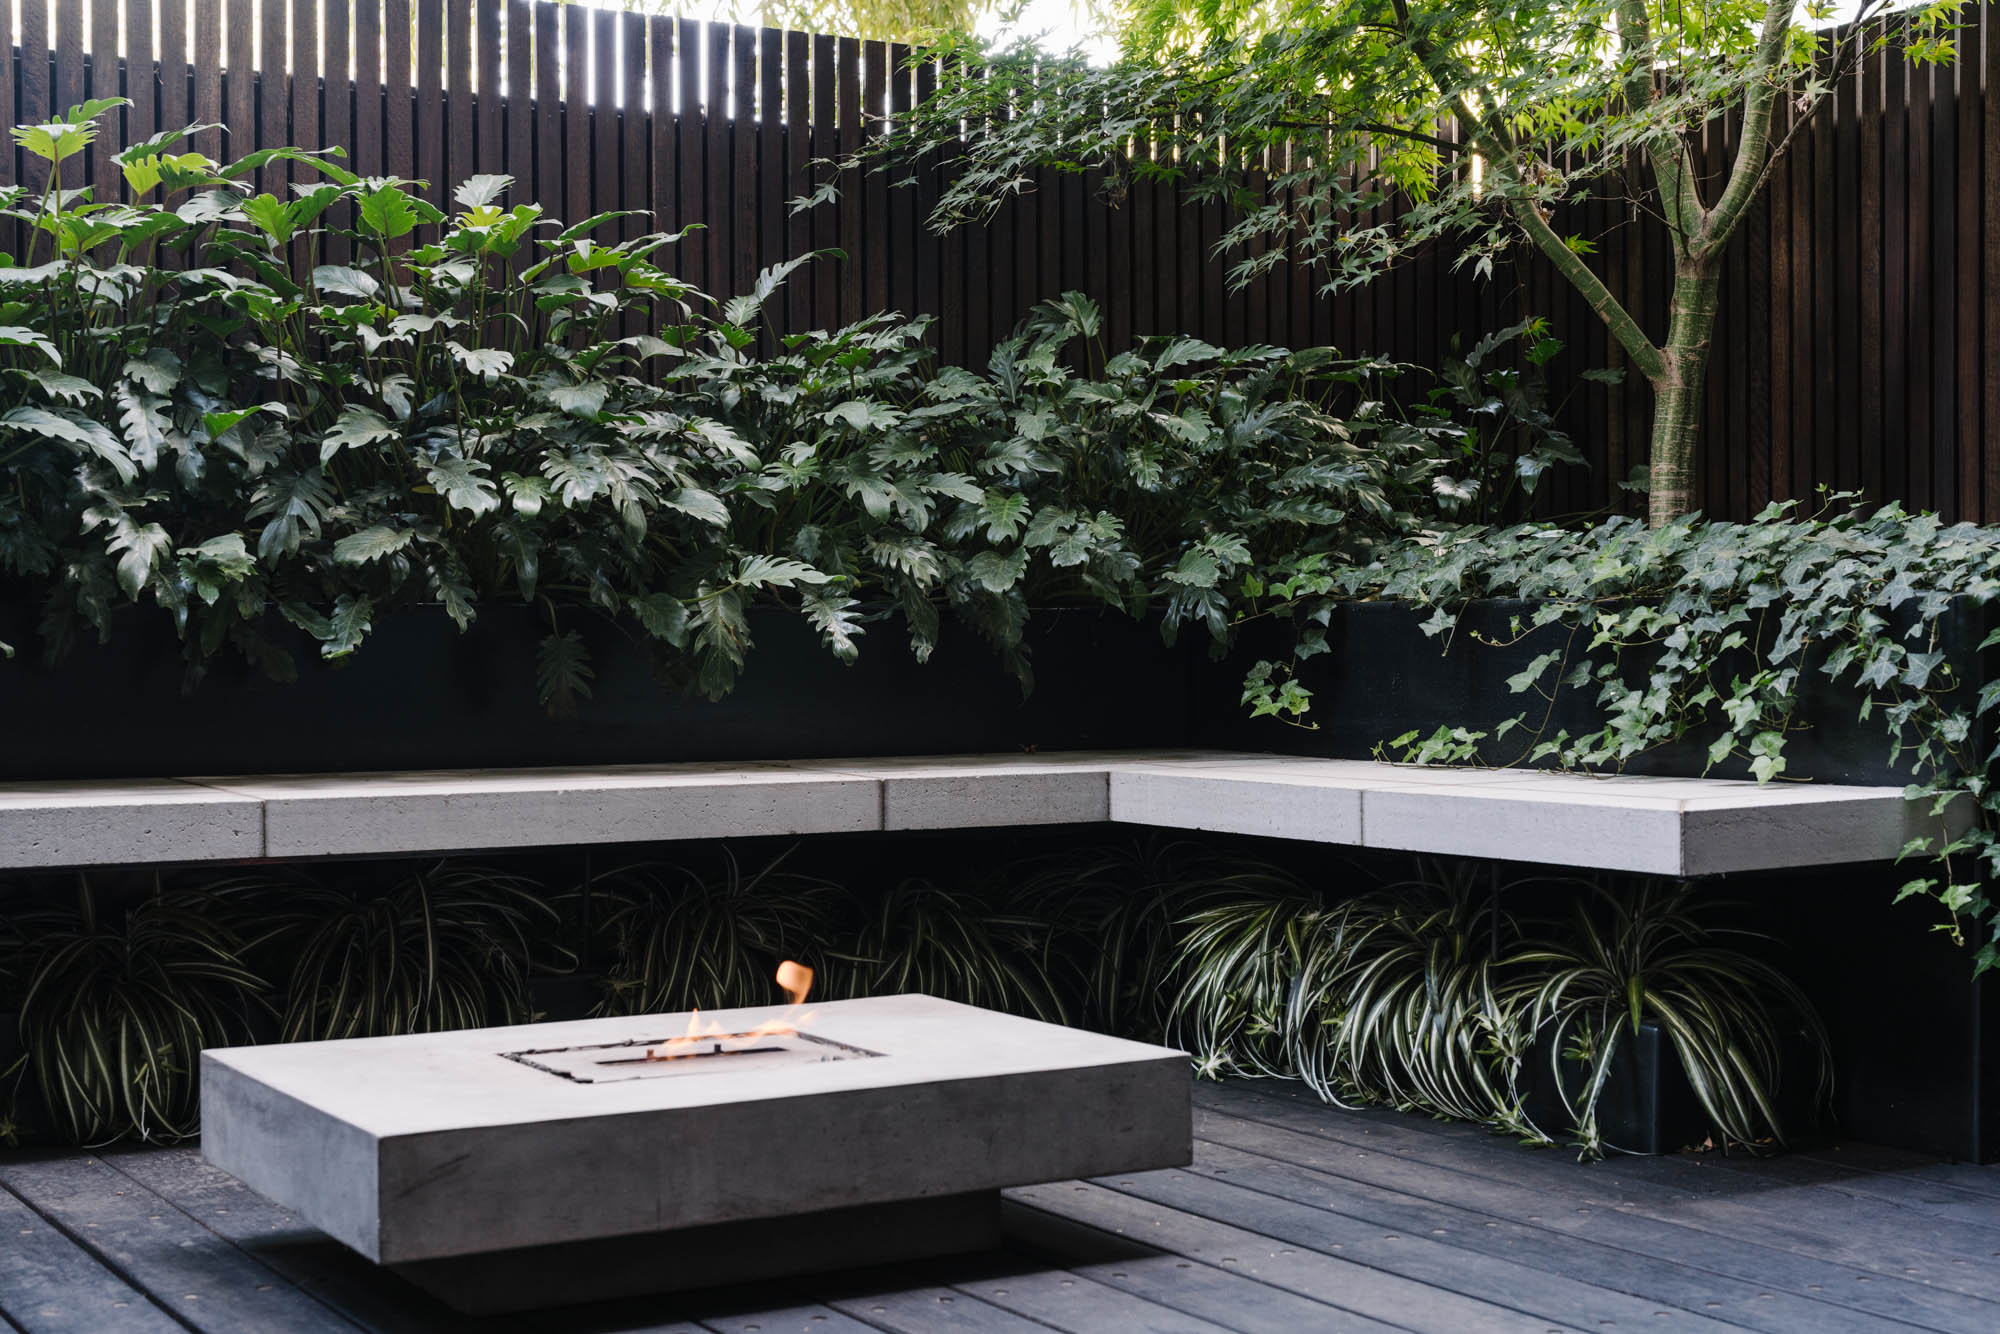 Melbourne landscape photographer Marnie Hawson for Australian House & Garden, South Yarra courtyard. Landscaping by Lisa Ellis.